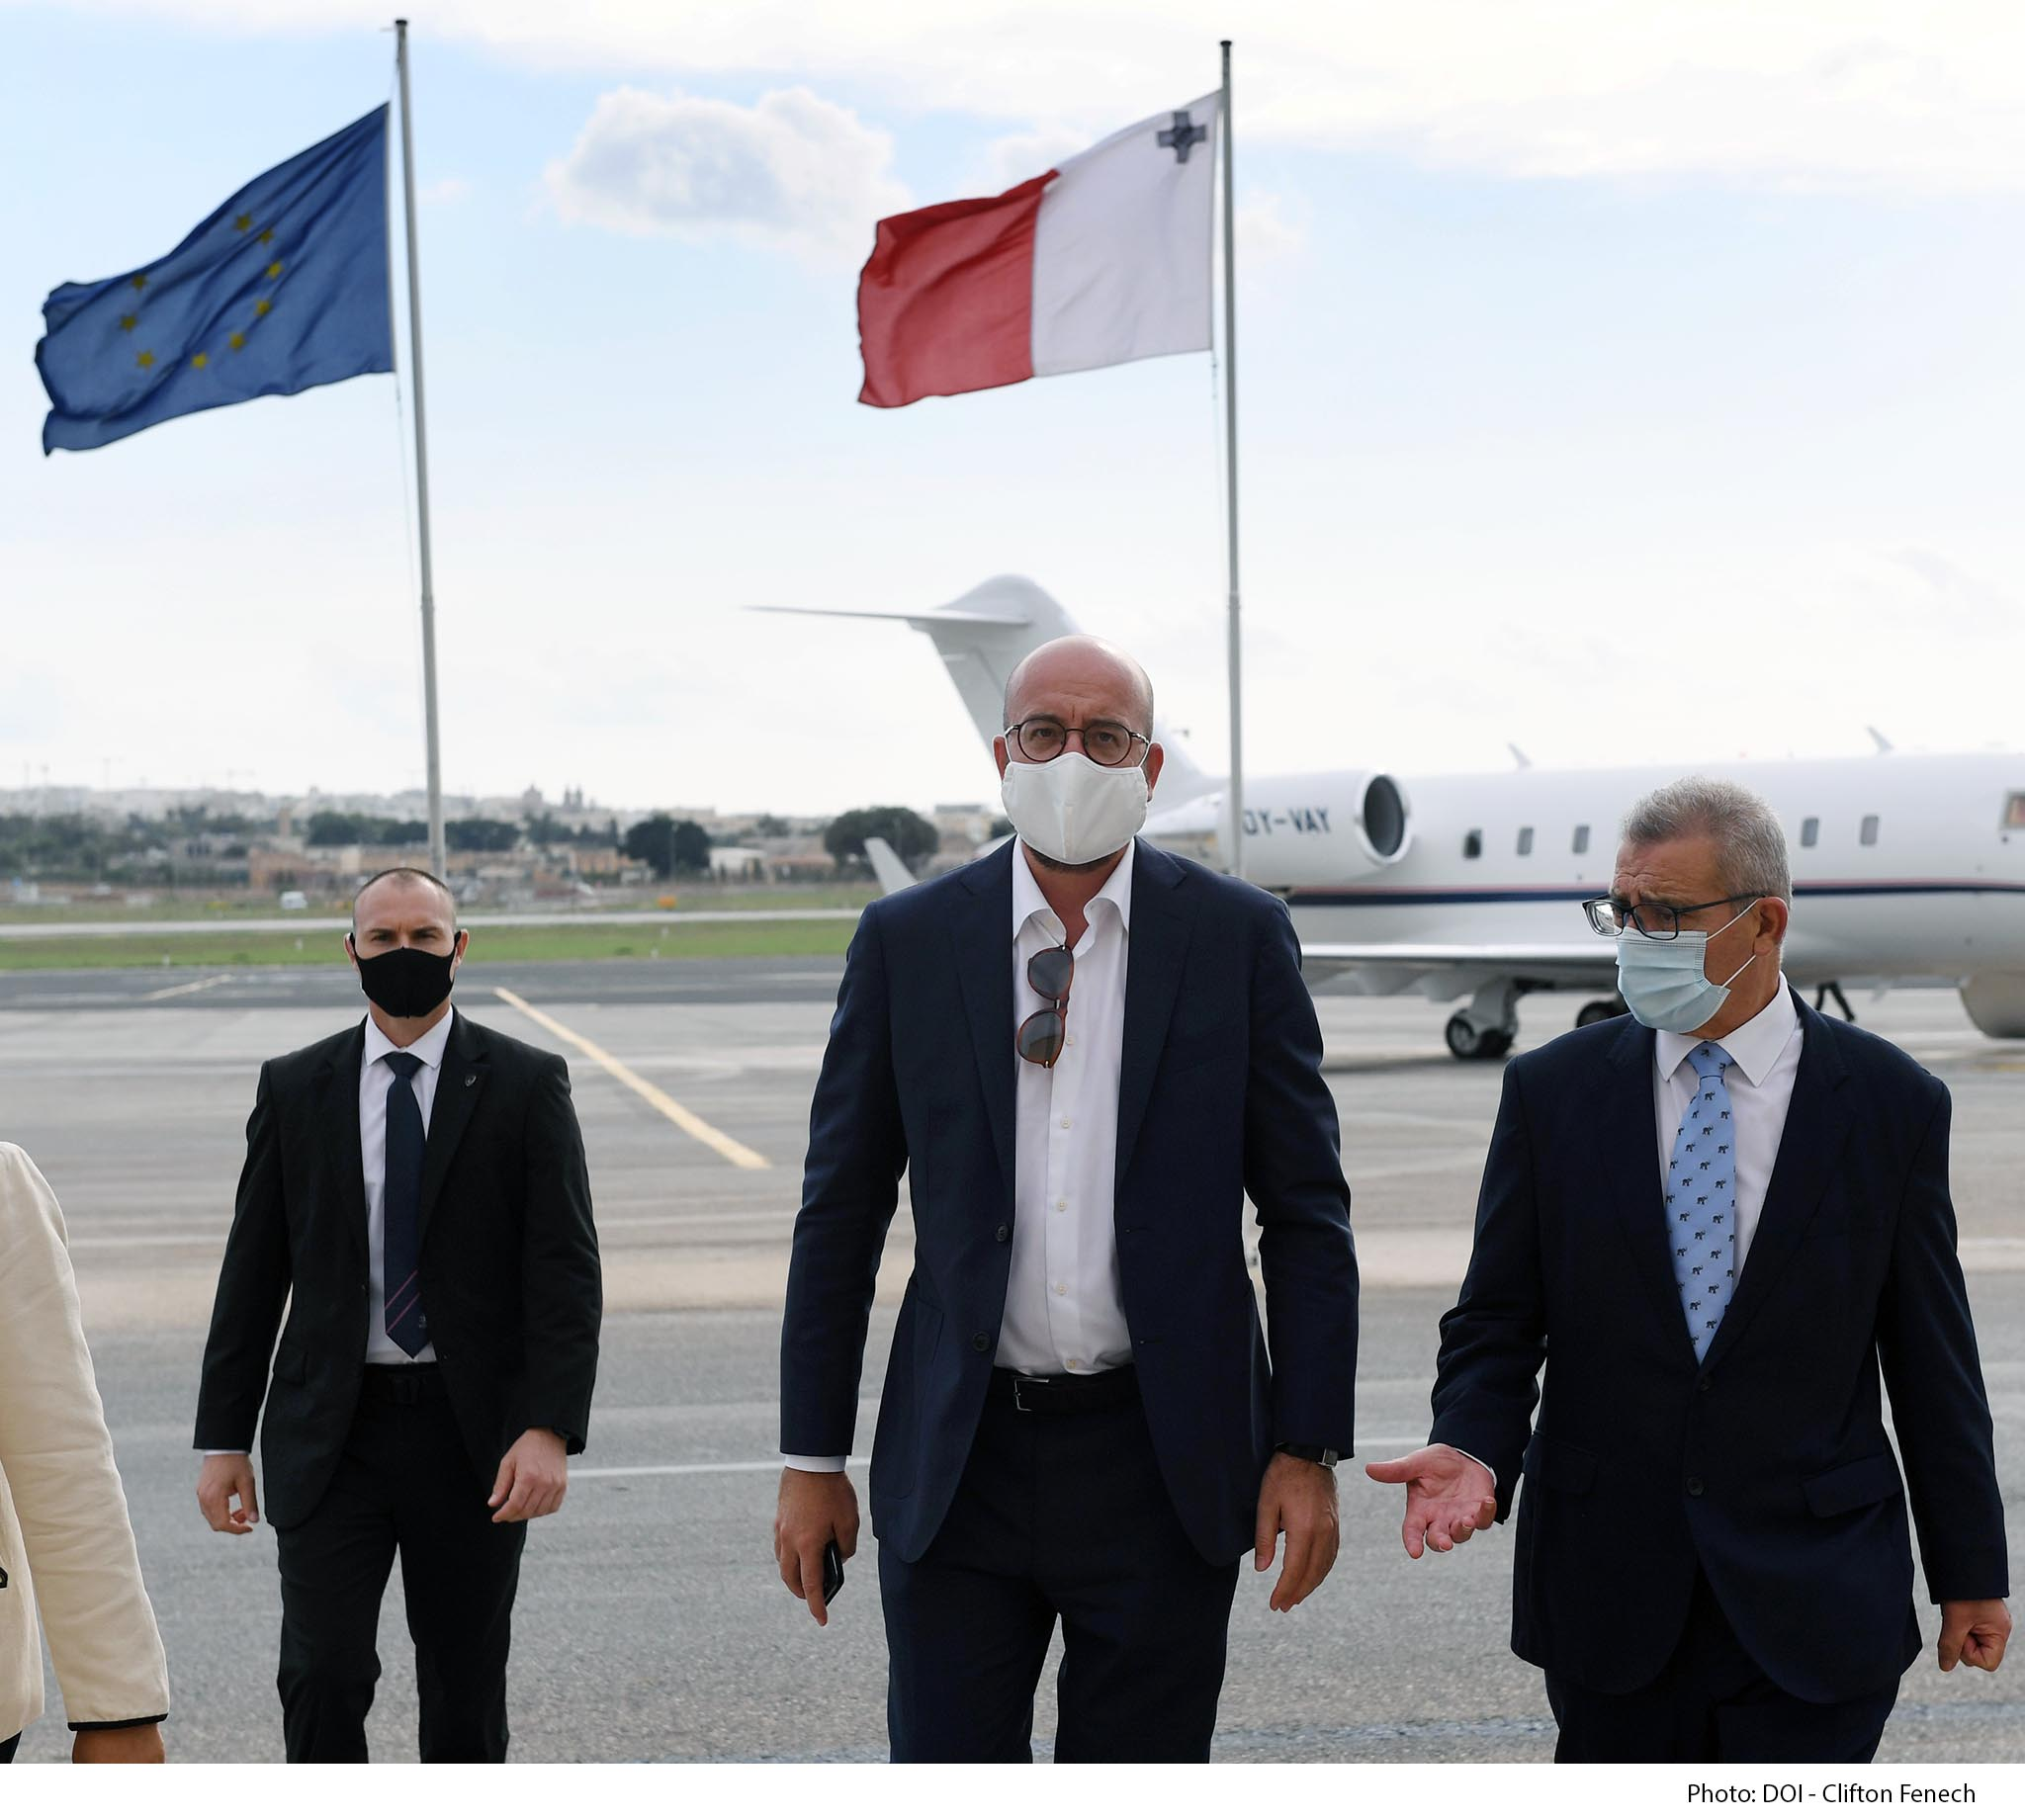 Official visit of the President of the European Council Charles Michel